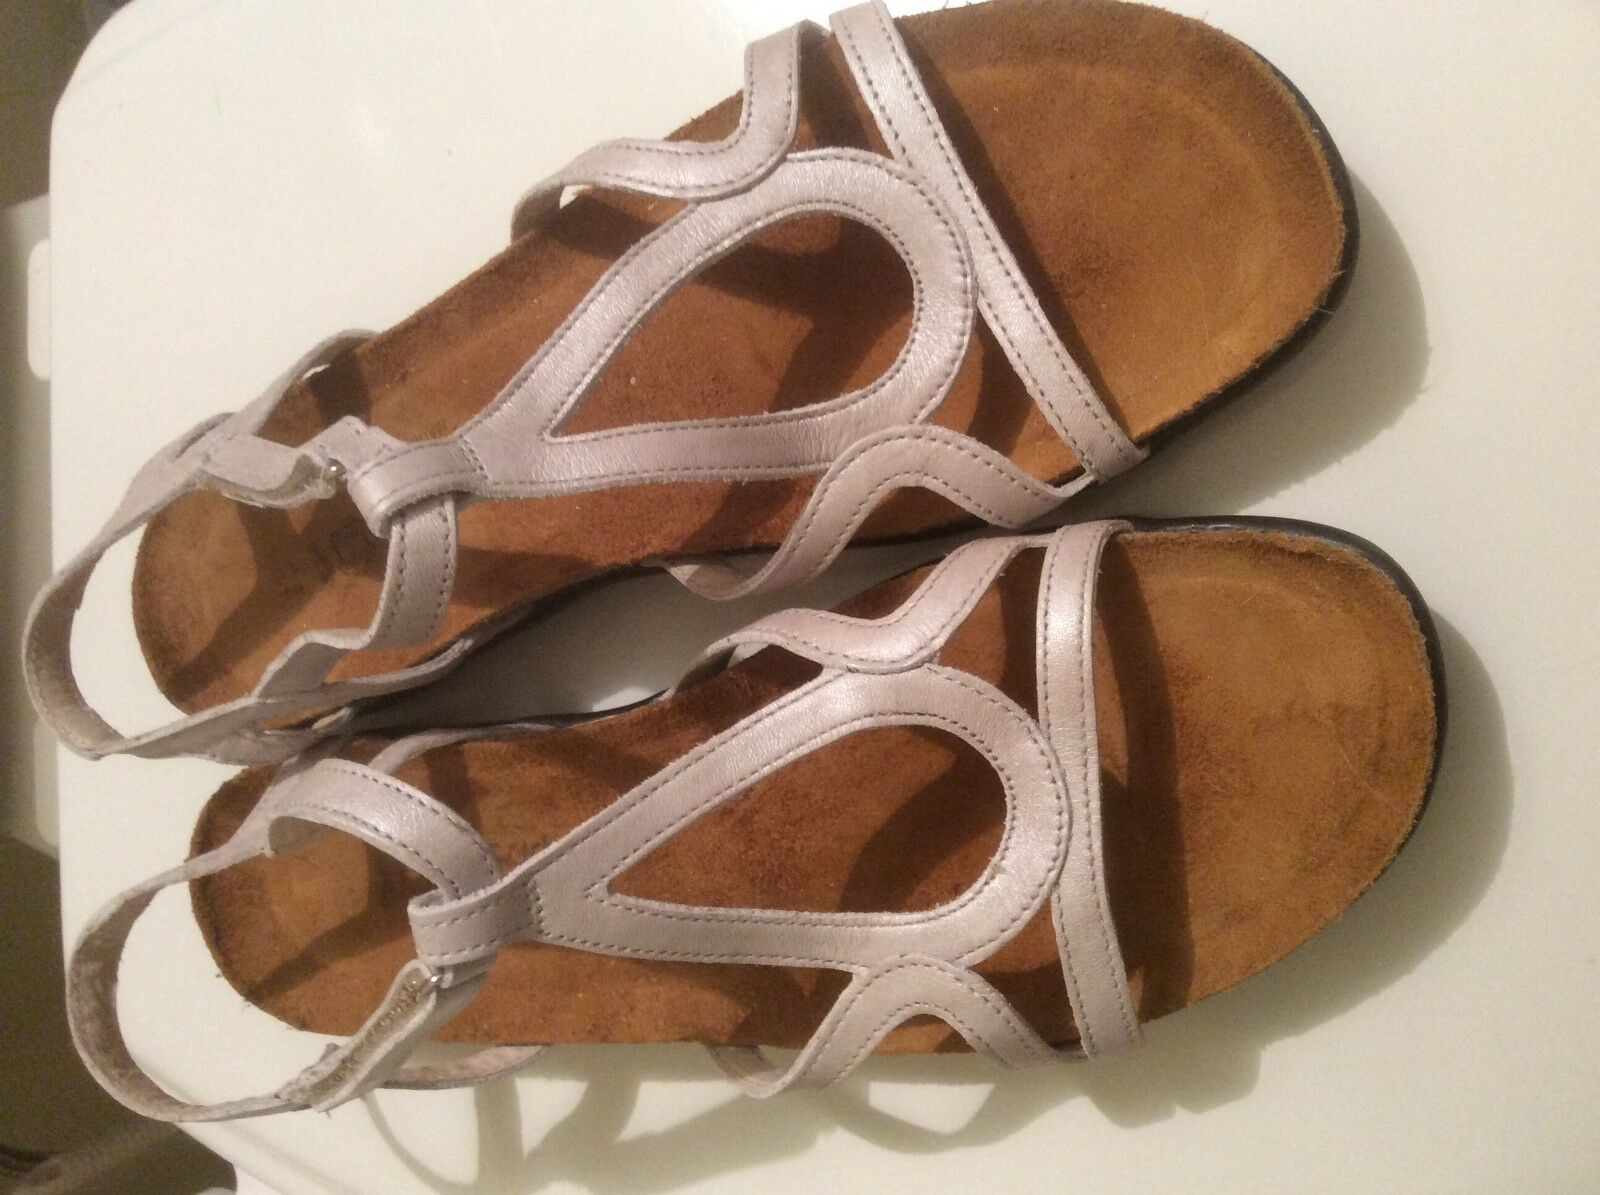 NAOT Dorith Strappy Sandal Leather NEW  store model display